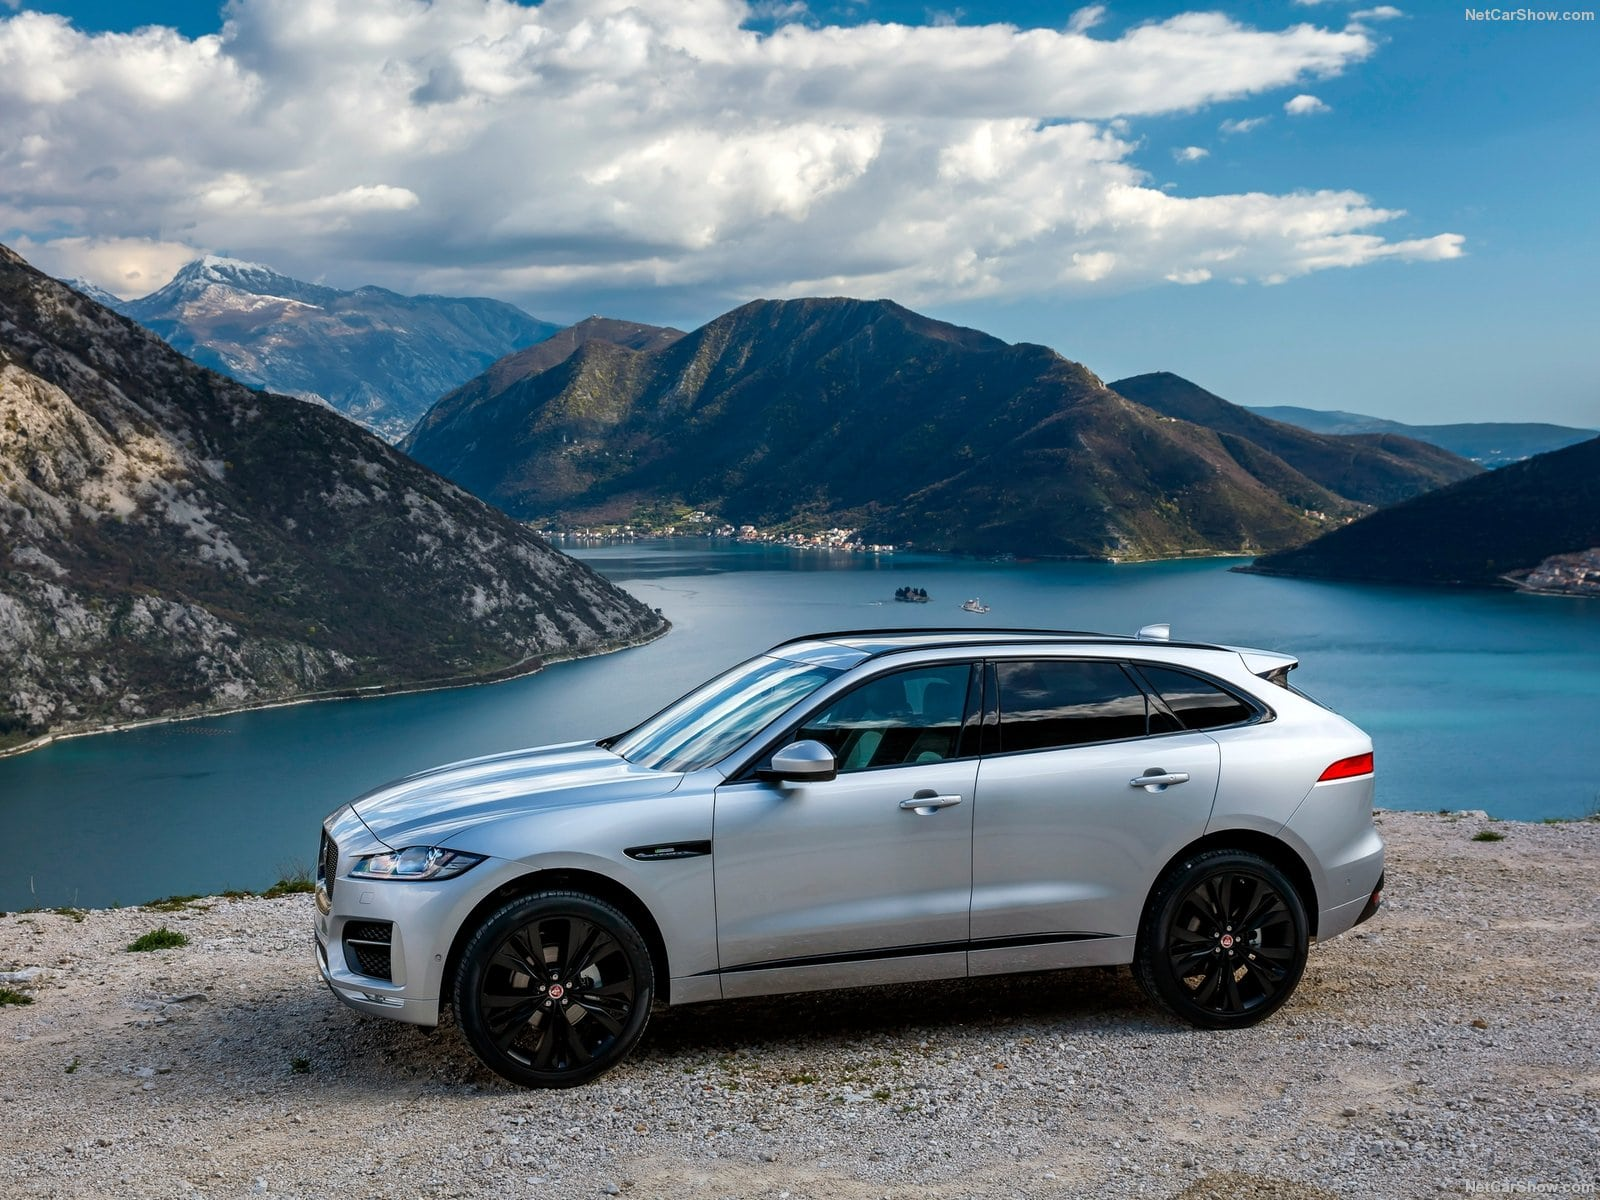 jaguar f-pace hd desktop wallpapers | 7wallpapers